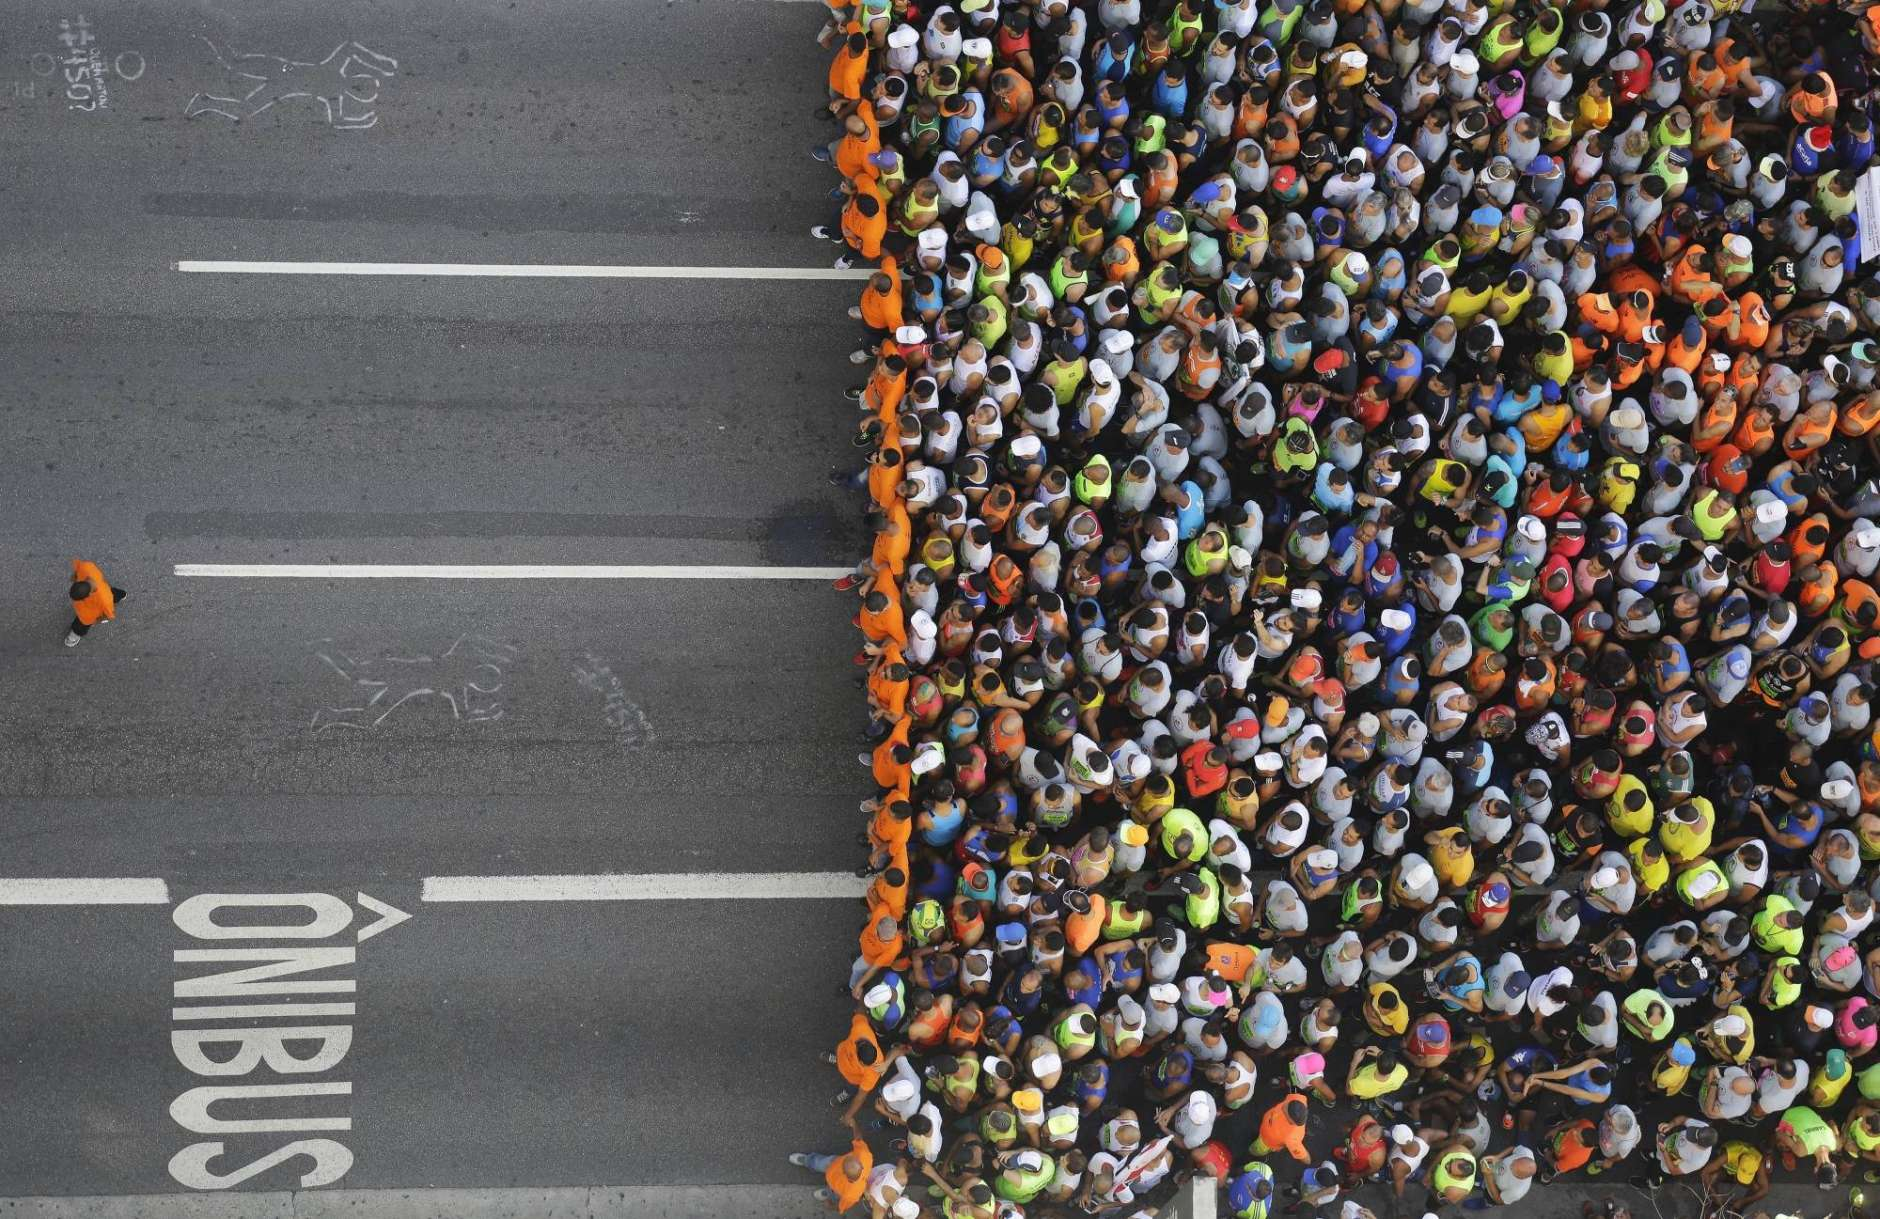 Runners wait to compete in the Sao Silvestre race in Sao Paulo, Brazil, Saturday, Dec. 31, 2016. The 15-kilometer race is held annually on New Year's Eve. (AP Photo/Nelson Antoine)